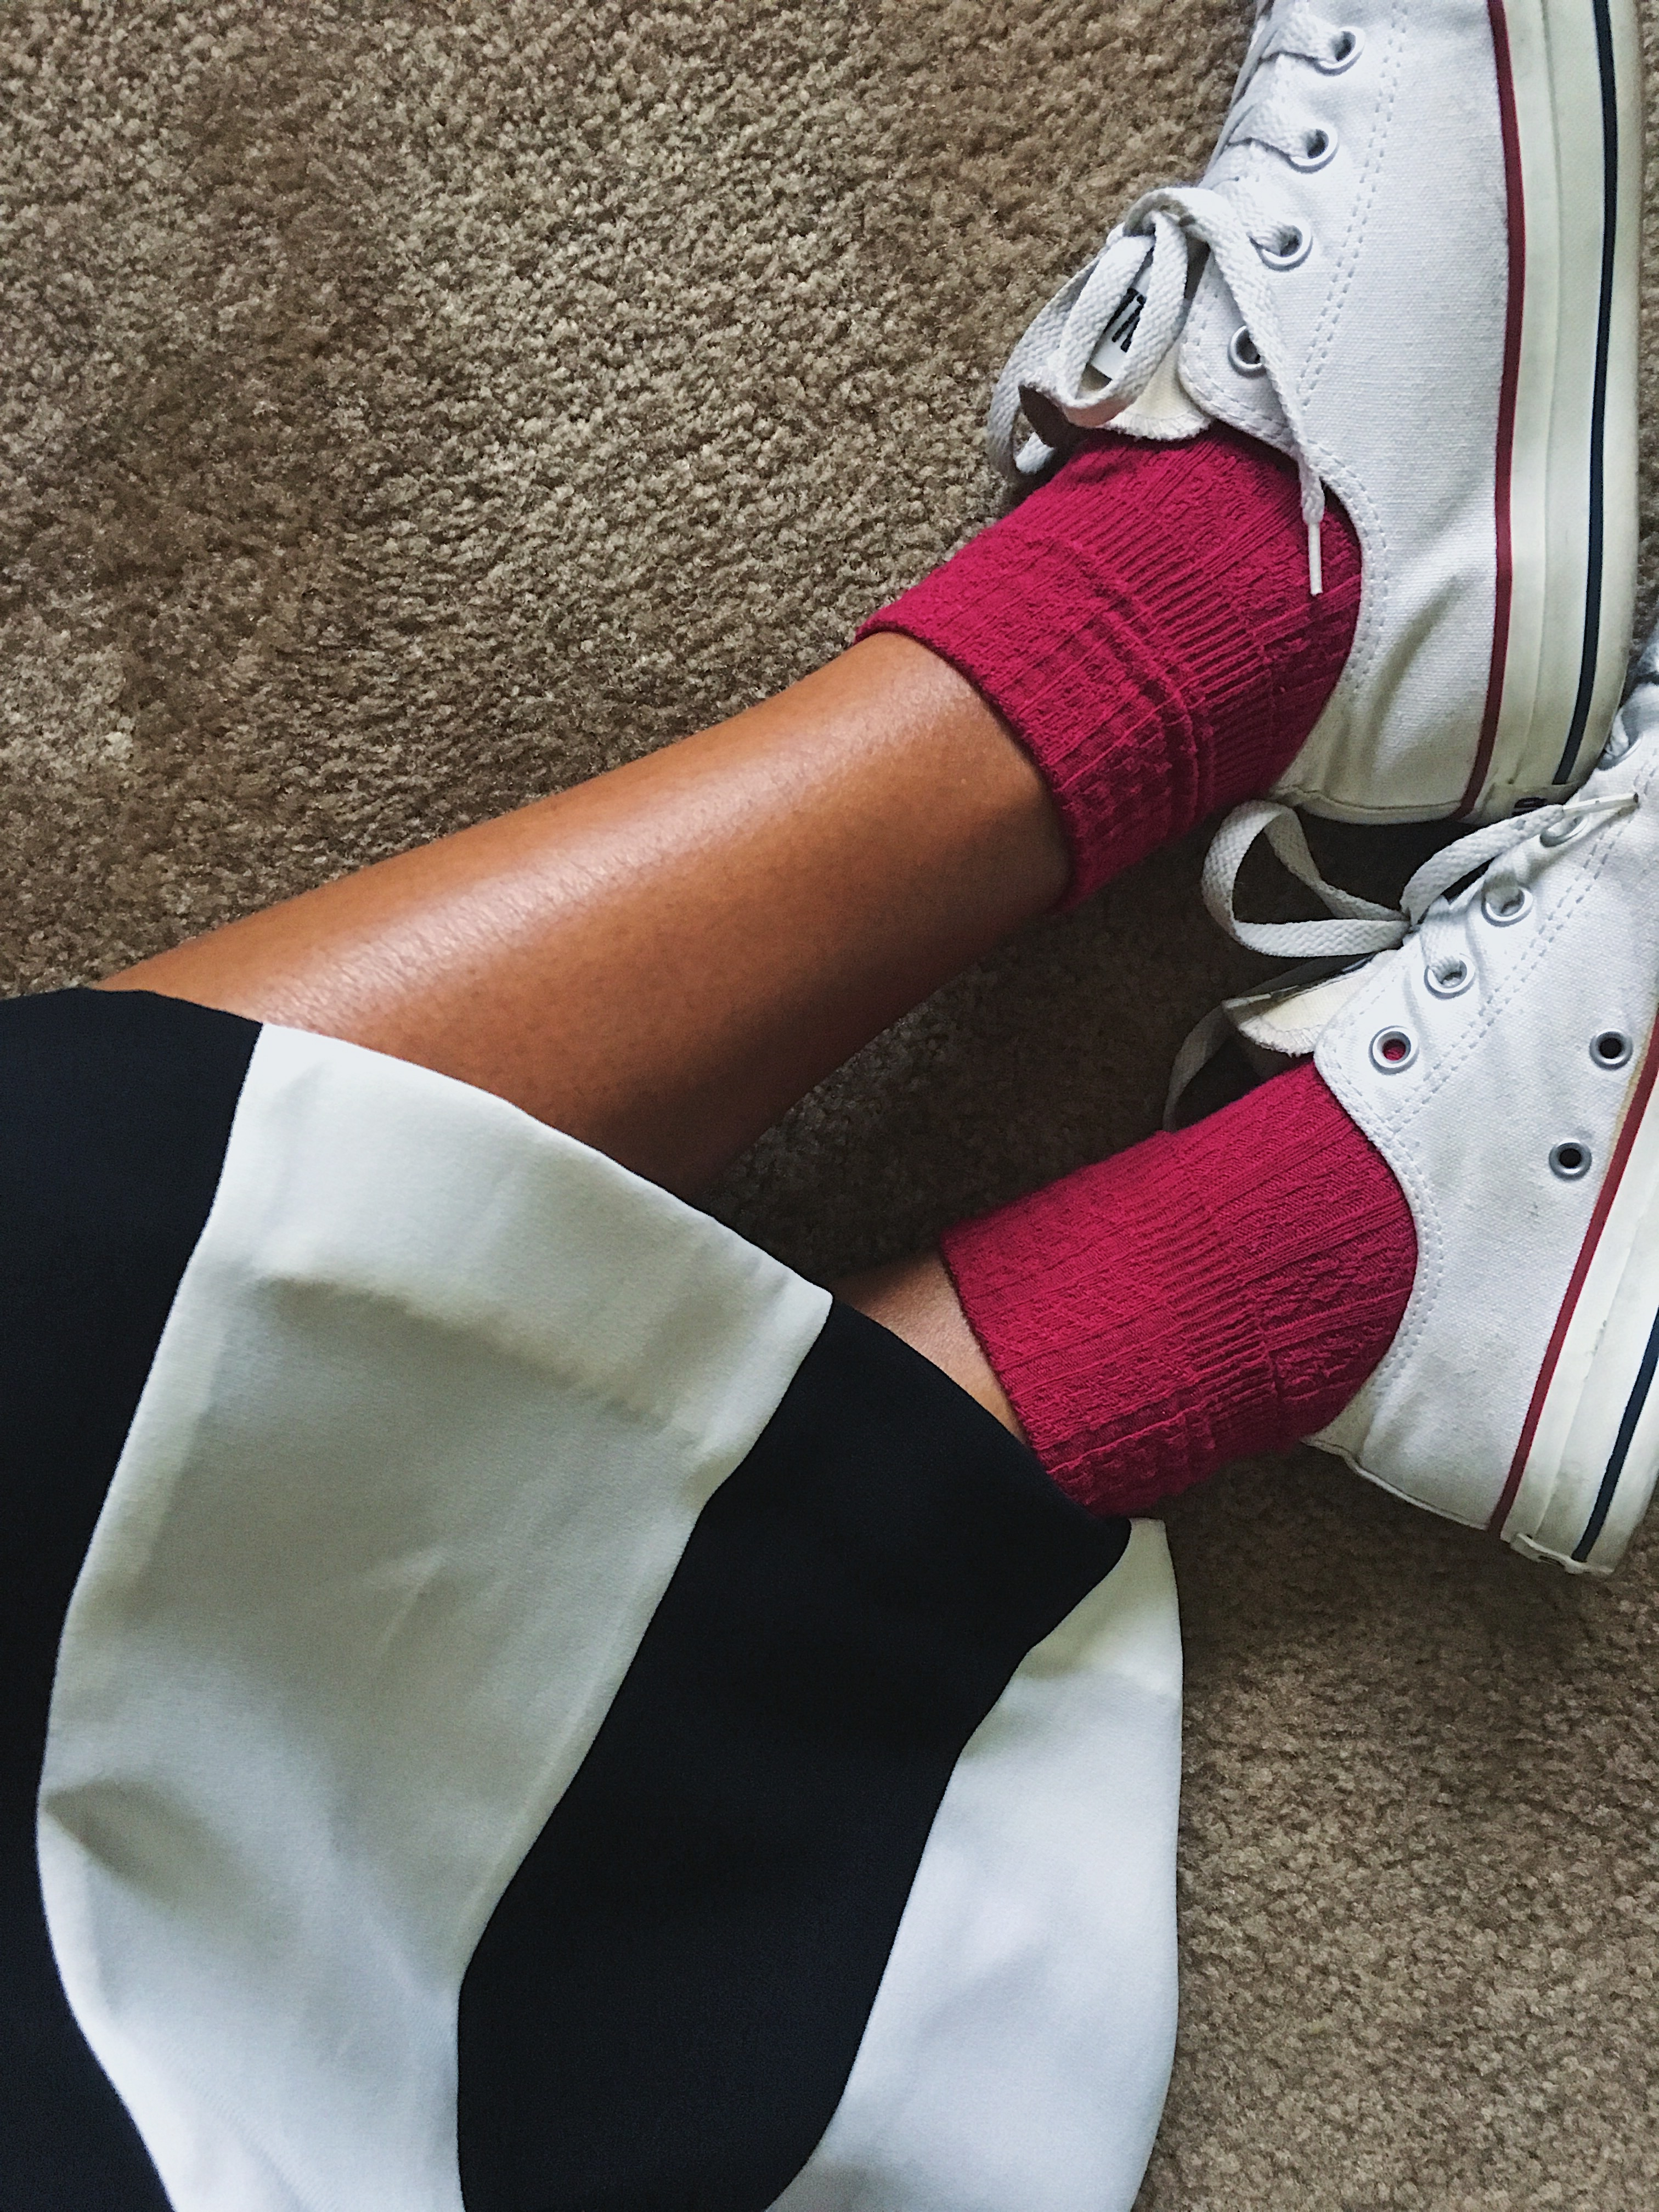 fit femme-sneakers with dresses-converse-pink socks